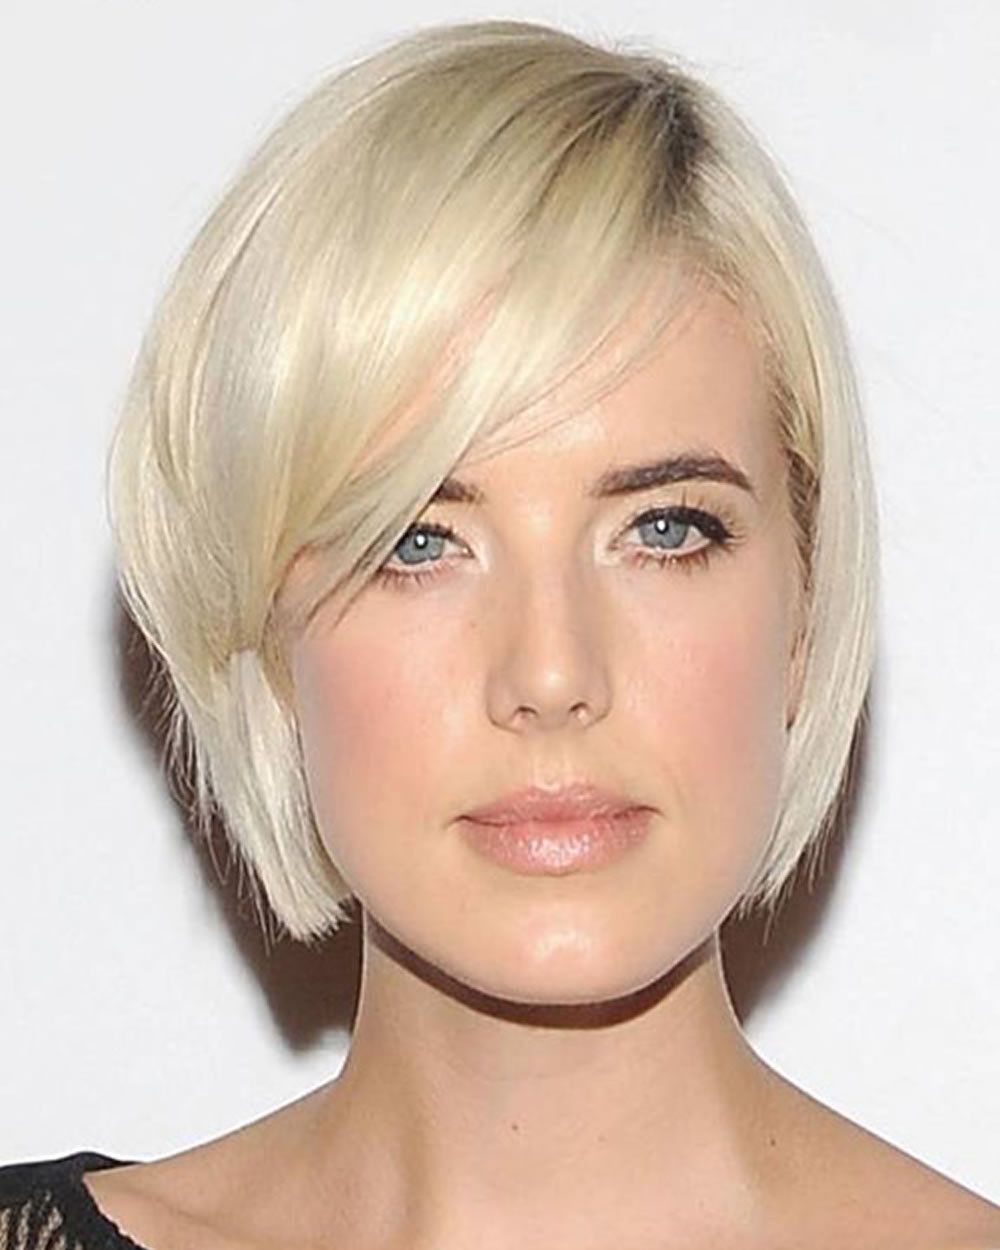 Best ideas about Easy Care Hairstyles For Fine Hair . Save or Pin Easy care hairstyles for fine hair Hairstyles for Women Now.